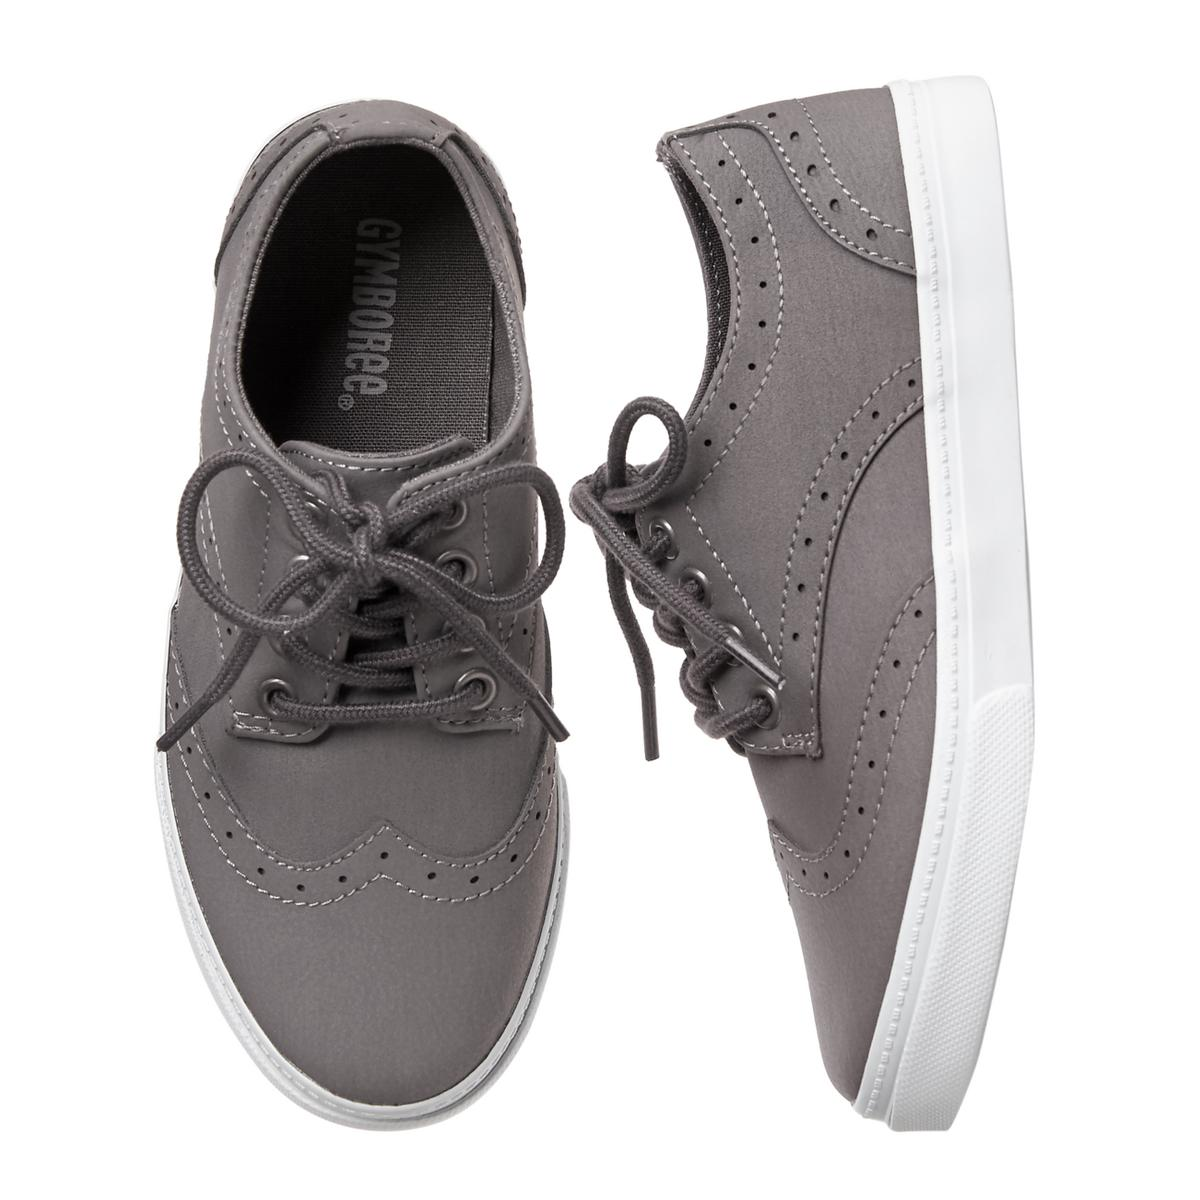 Boys Wingtip Sneakers: Sale $9.99, Regular $32.95